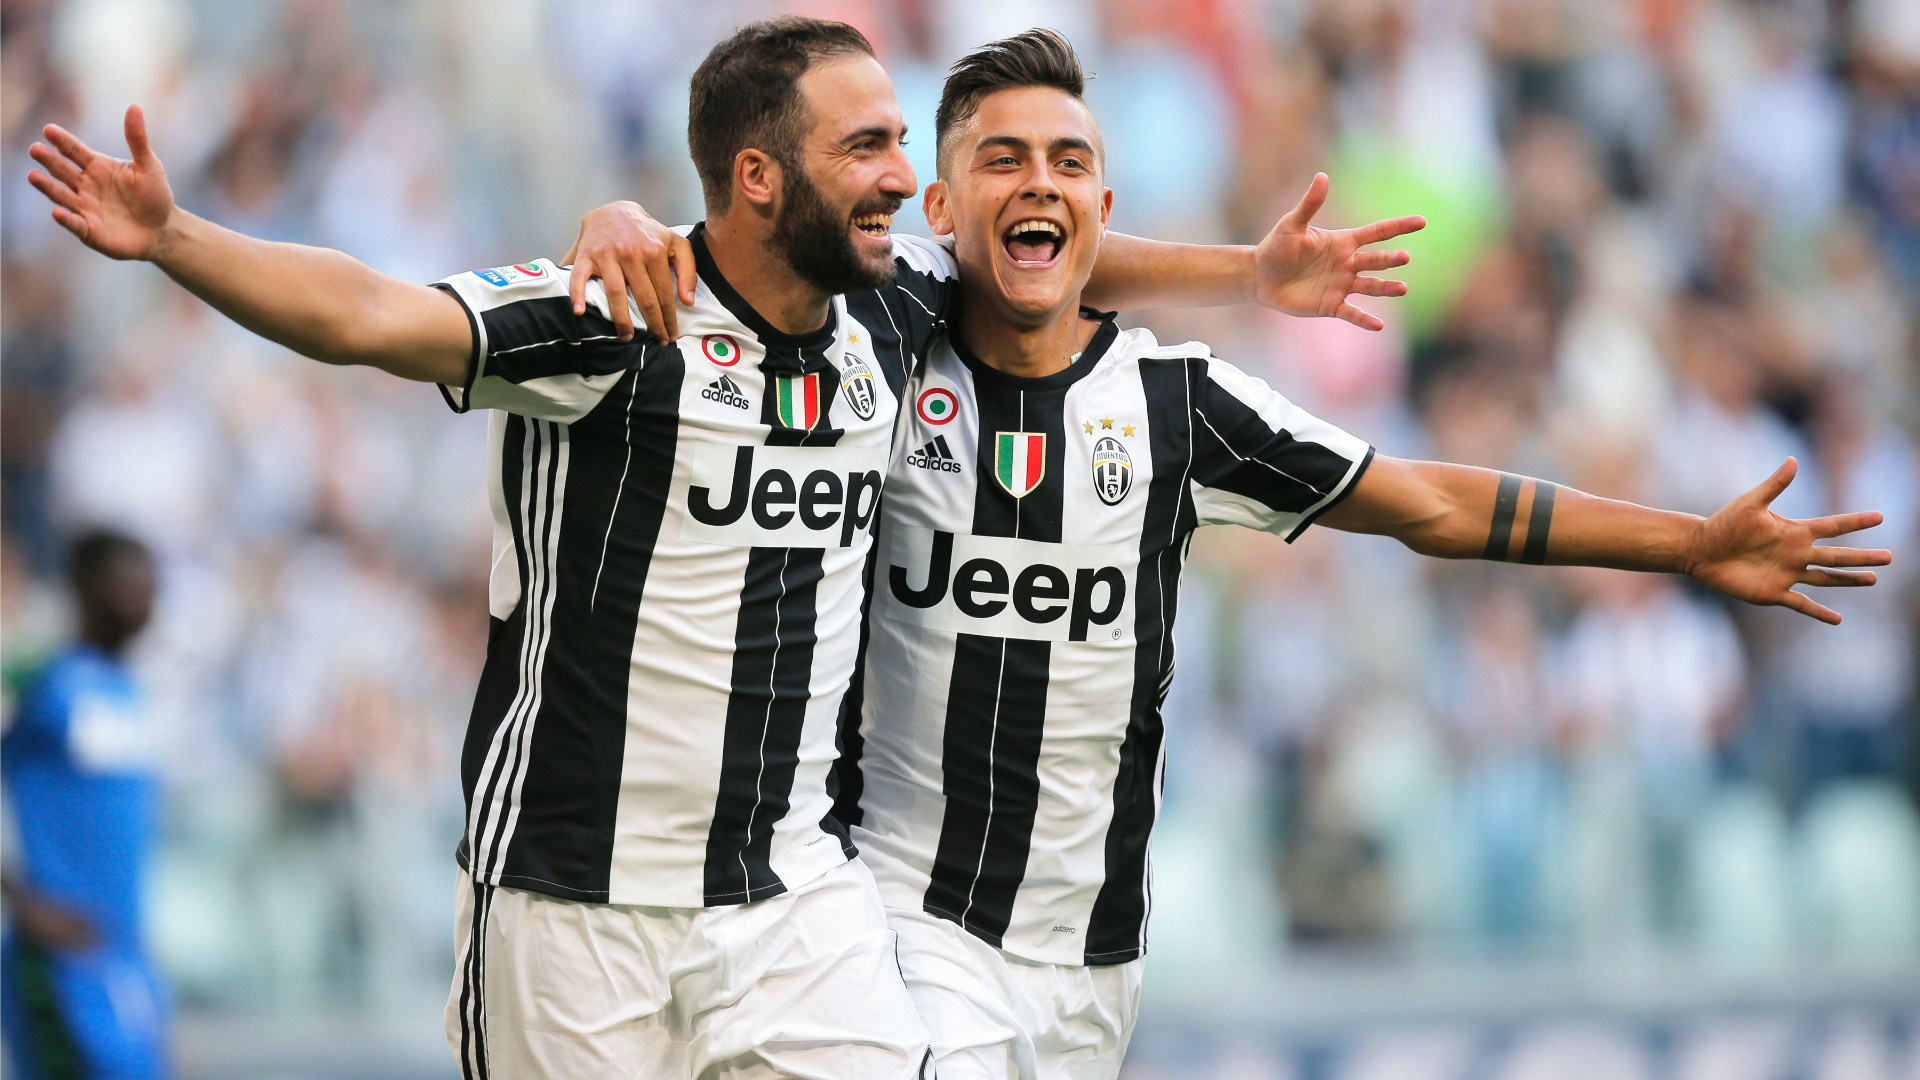 Juventus VS Torino BETTING TIPS (06-05-2017)